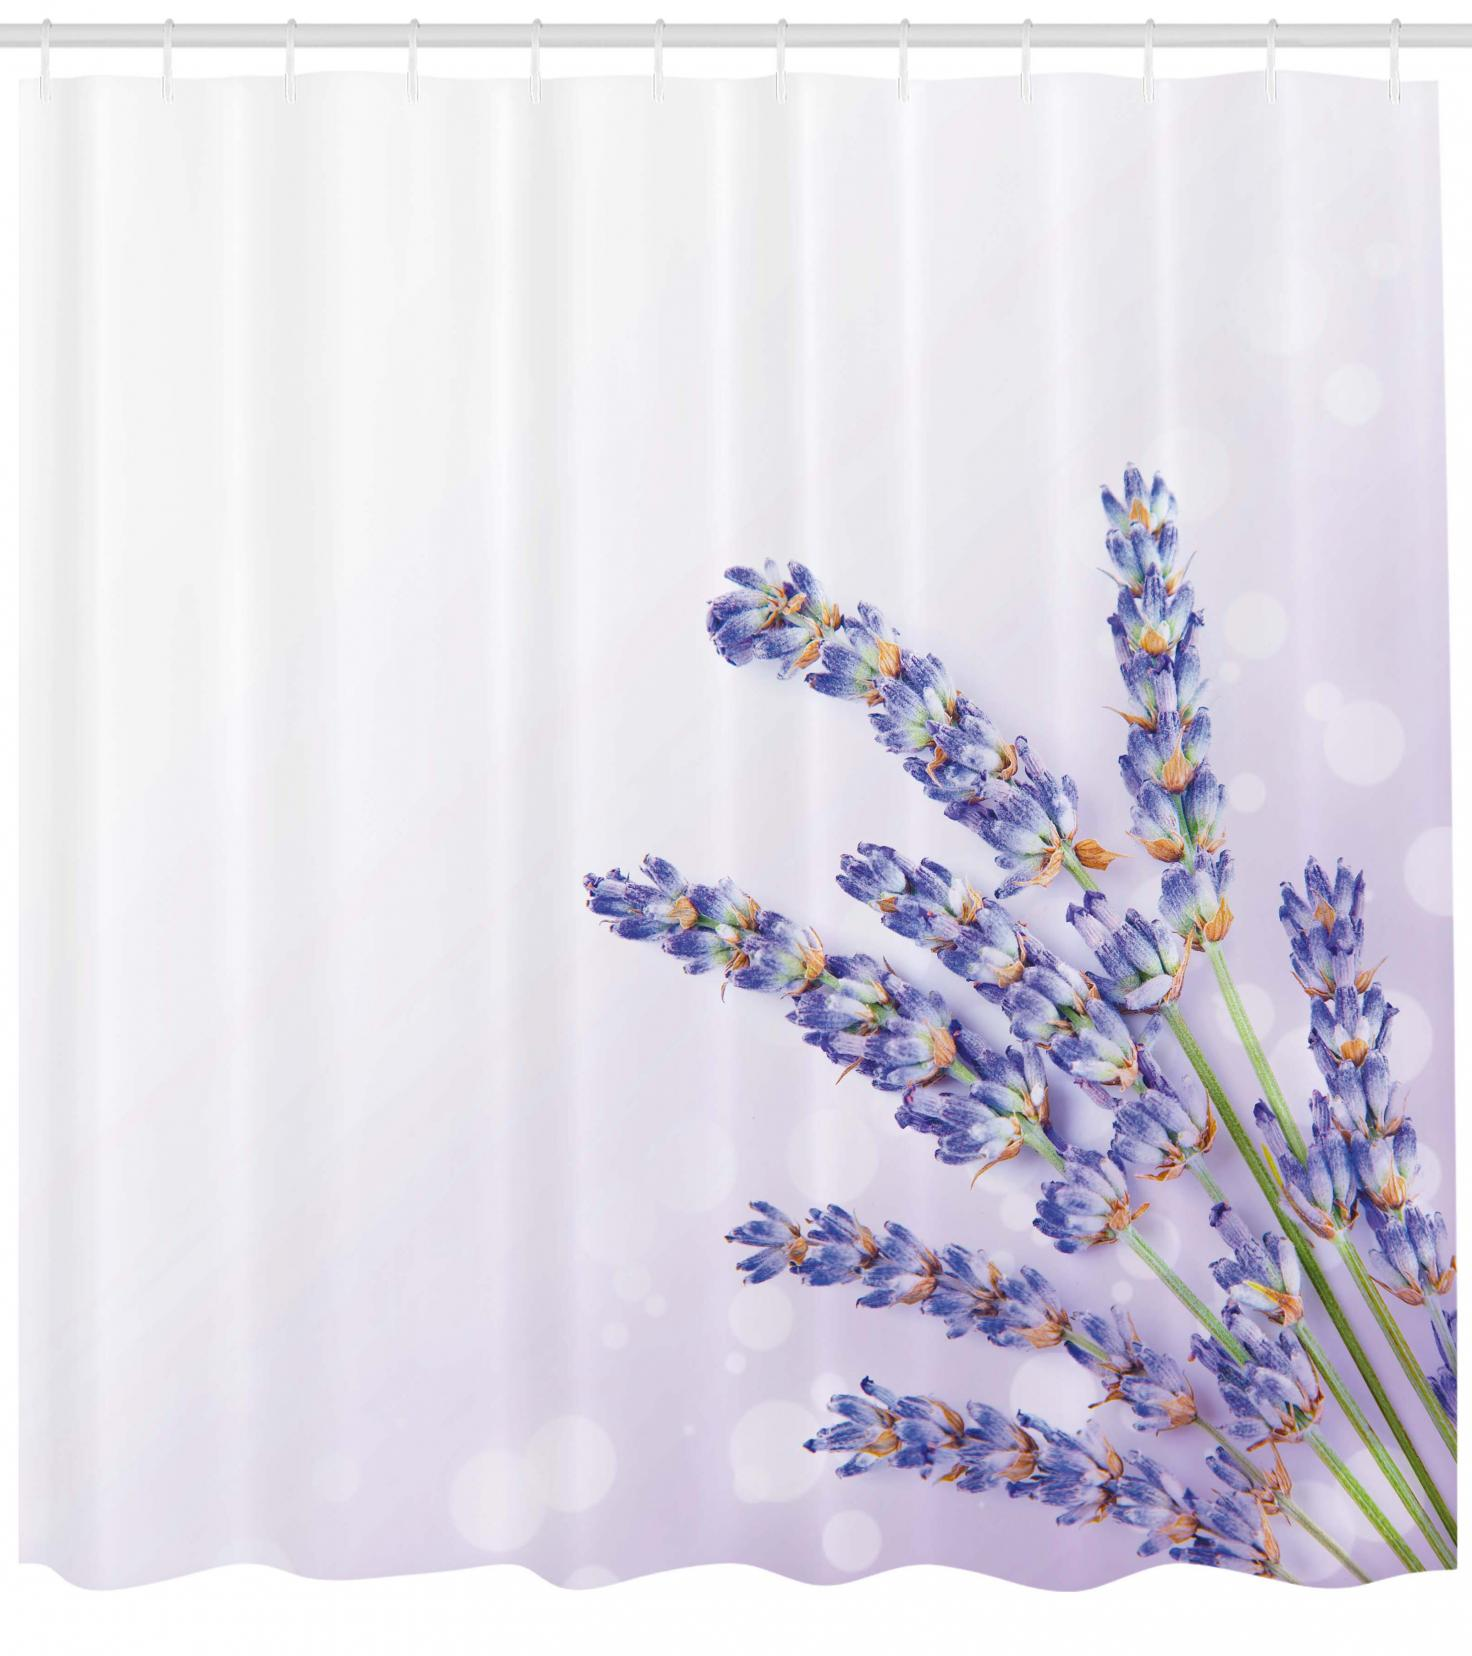 Lavender Shower Curtains Lavender Shower Curtain Little Posy Of Medicinal Herb Fresh Plant Of Purple Flower Spa Aromatheraphy Organic Fabric Bathroom Set With Hooks